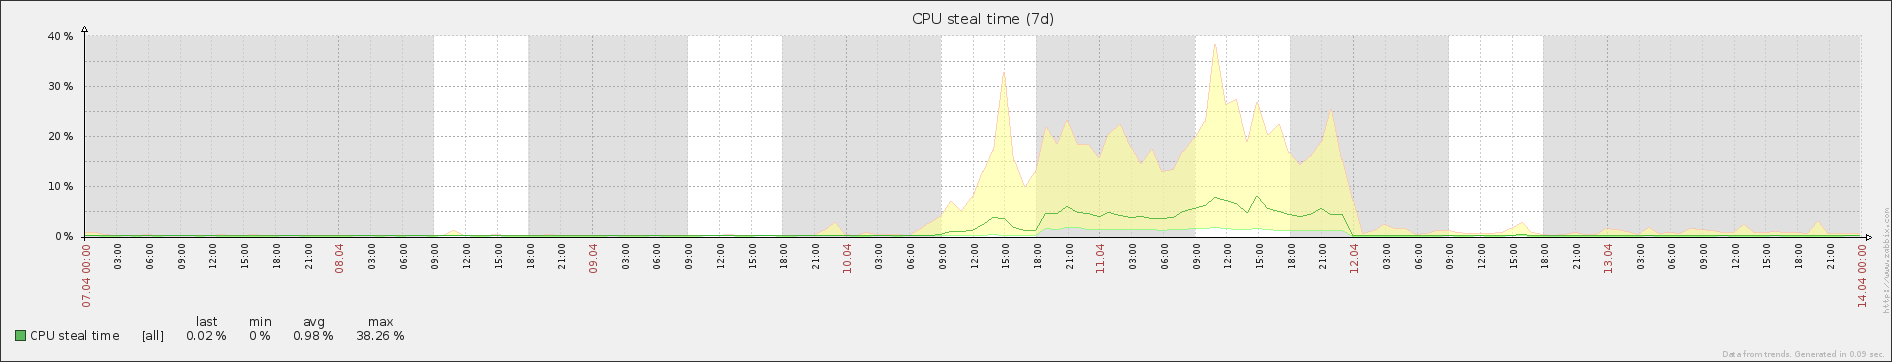 Stolen CPU time returns to normal.